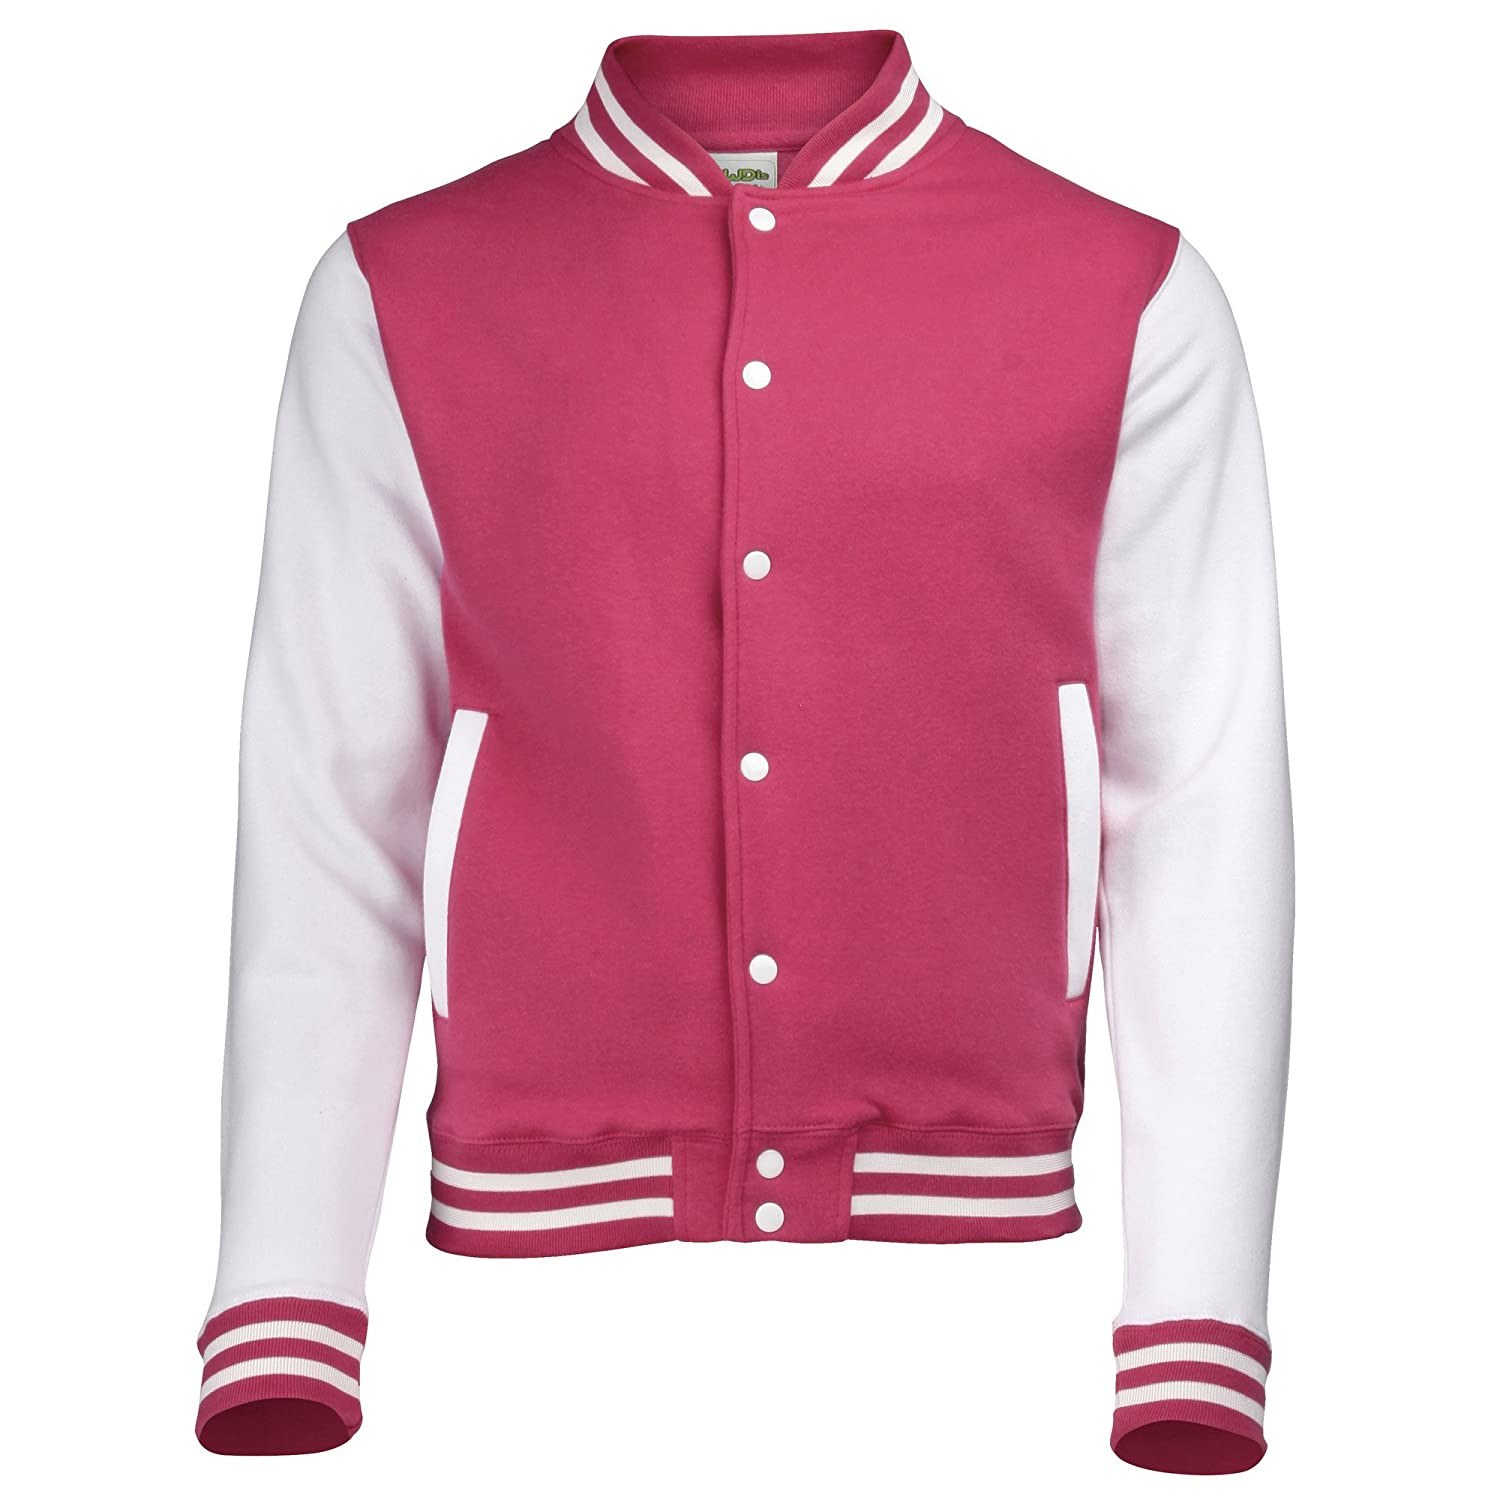 Amazon.com: Awdis Varsity jacket - 16 Colours - Sizes XS to 2XL ...